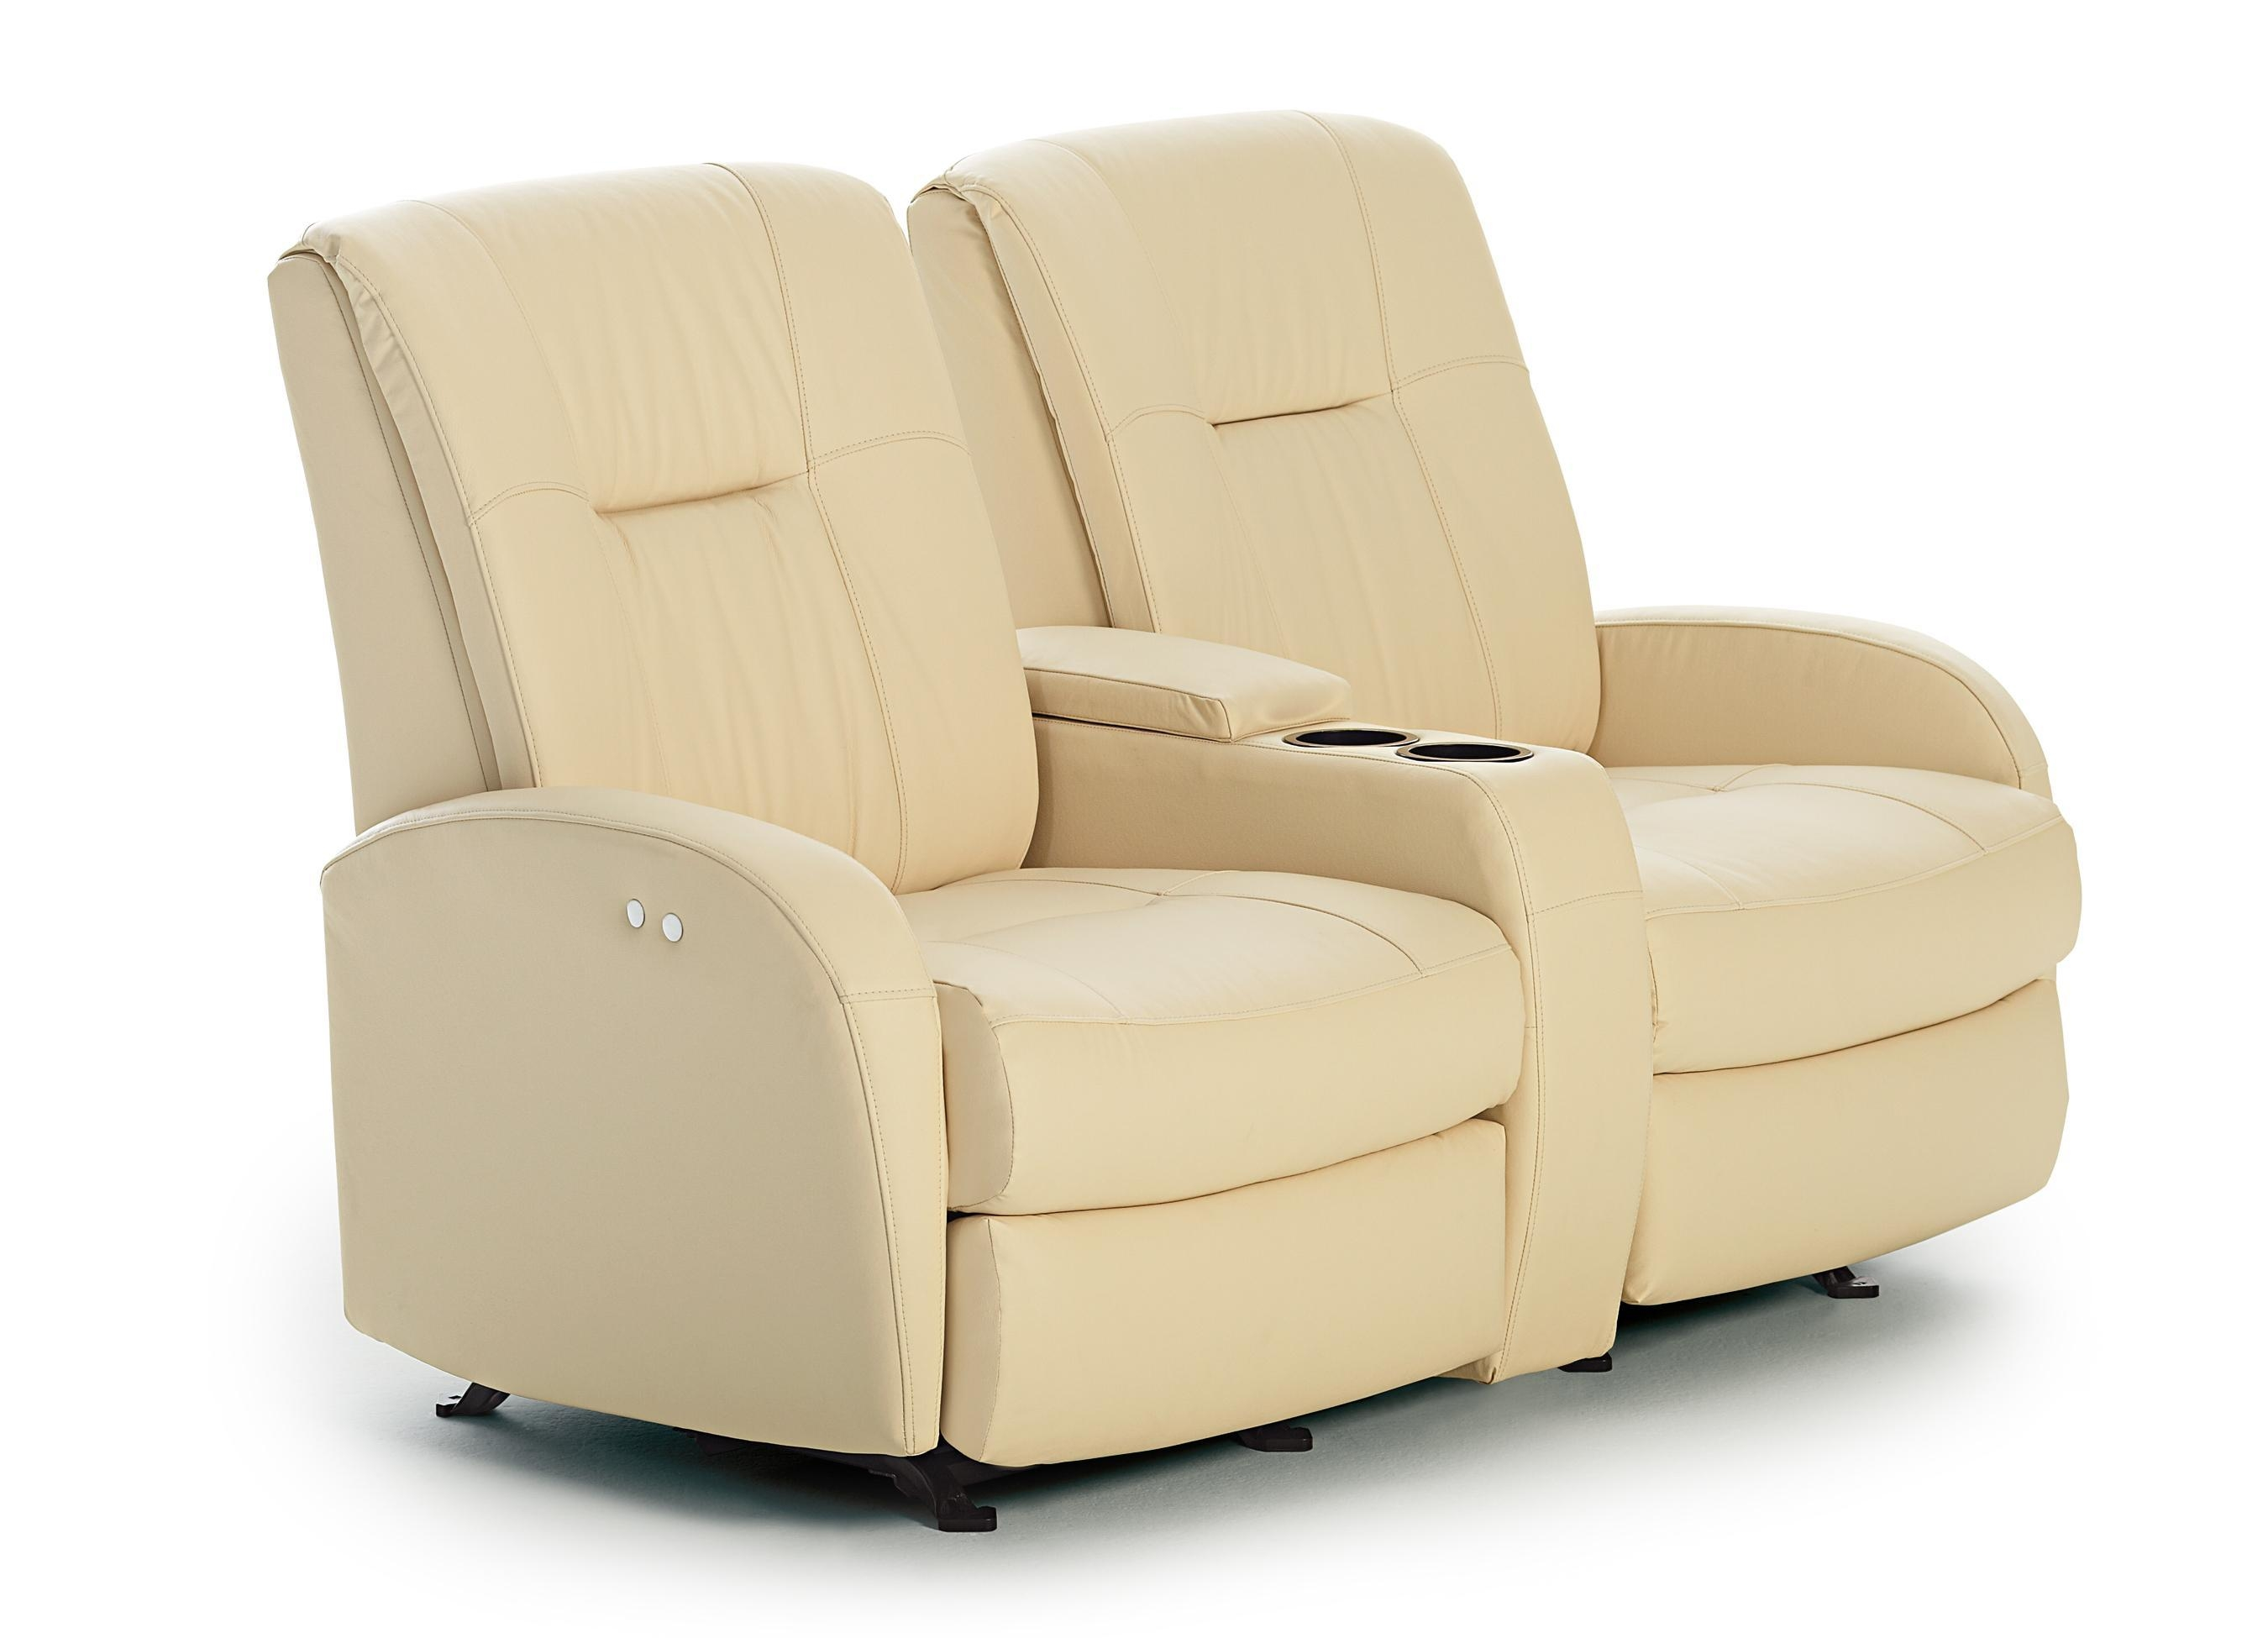 Furniture: Enjoy Your Time With Cozy Rocking Recliner Loveseat Intended For Rv Recliner Sofas (Image 4 of 20)